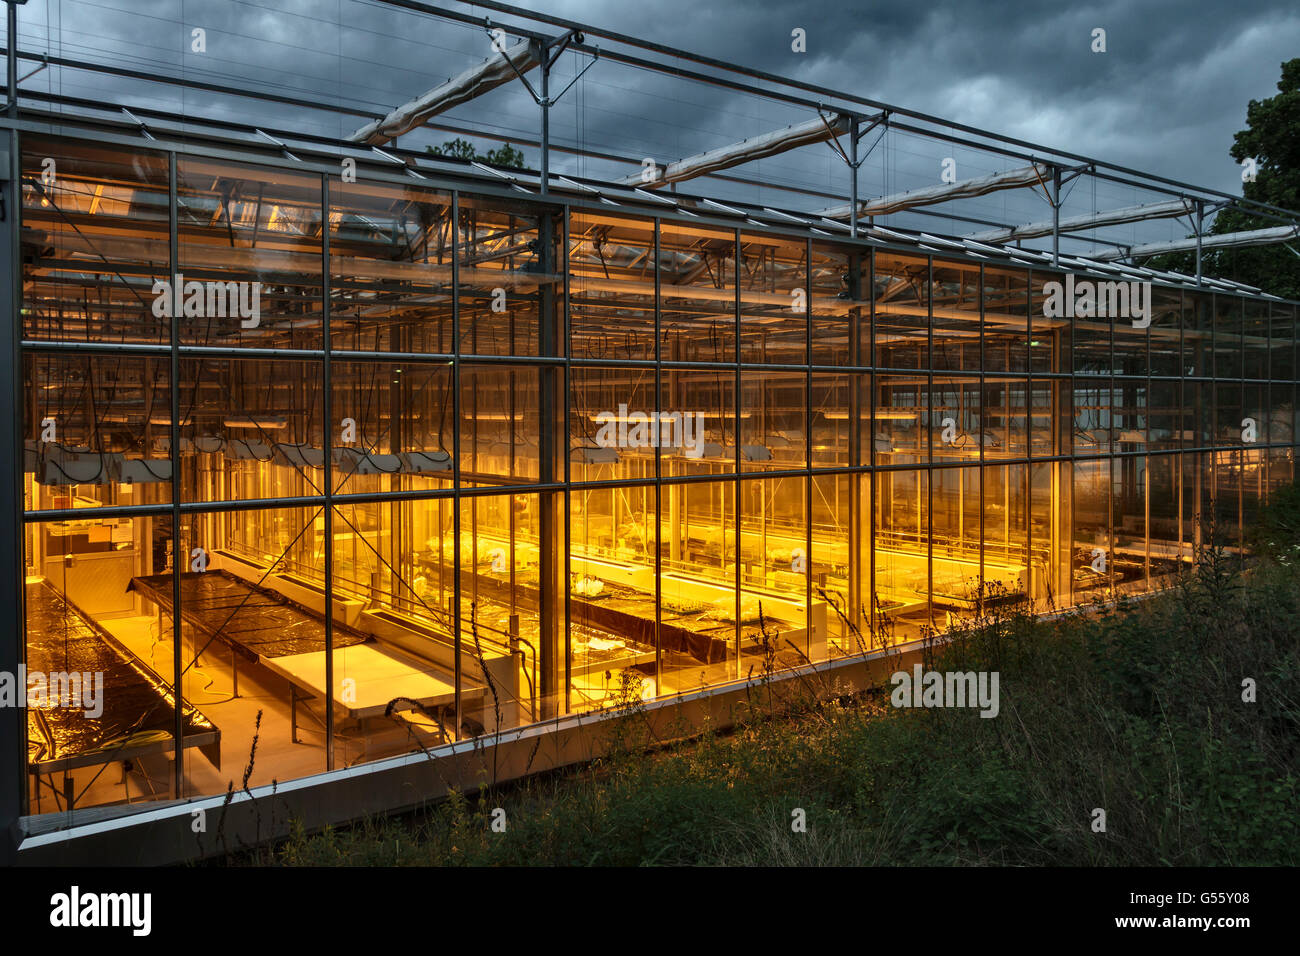 Dahlem, Berlin, Germany. Growing lights in greenhouses belonging to the Biology Department of the Freie Universität - Stock Image